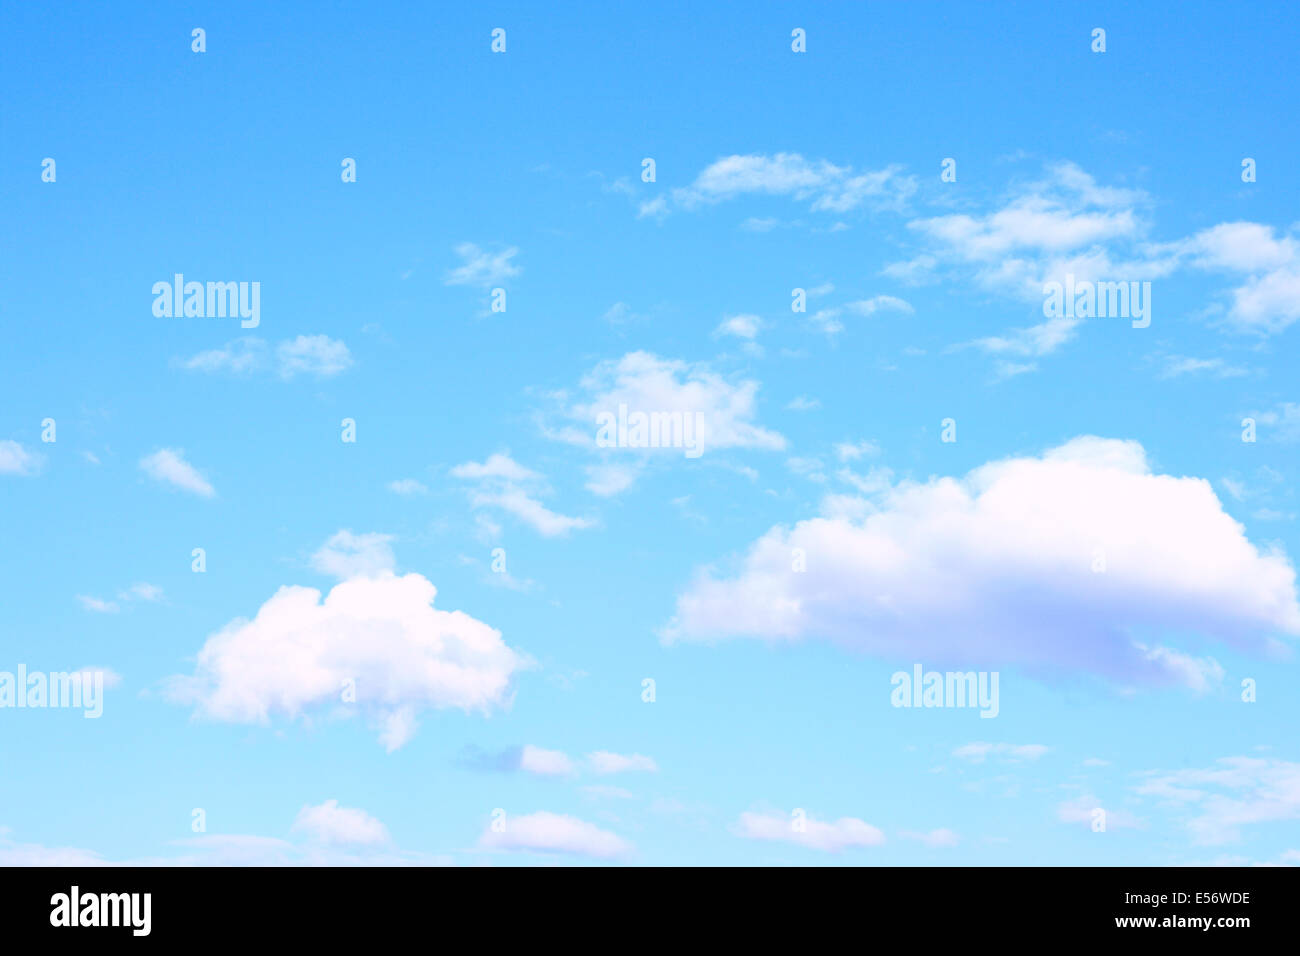 Light blue sky and clouds, may be used as background - Stock Image